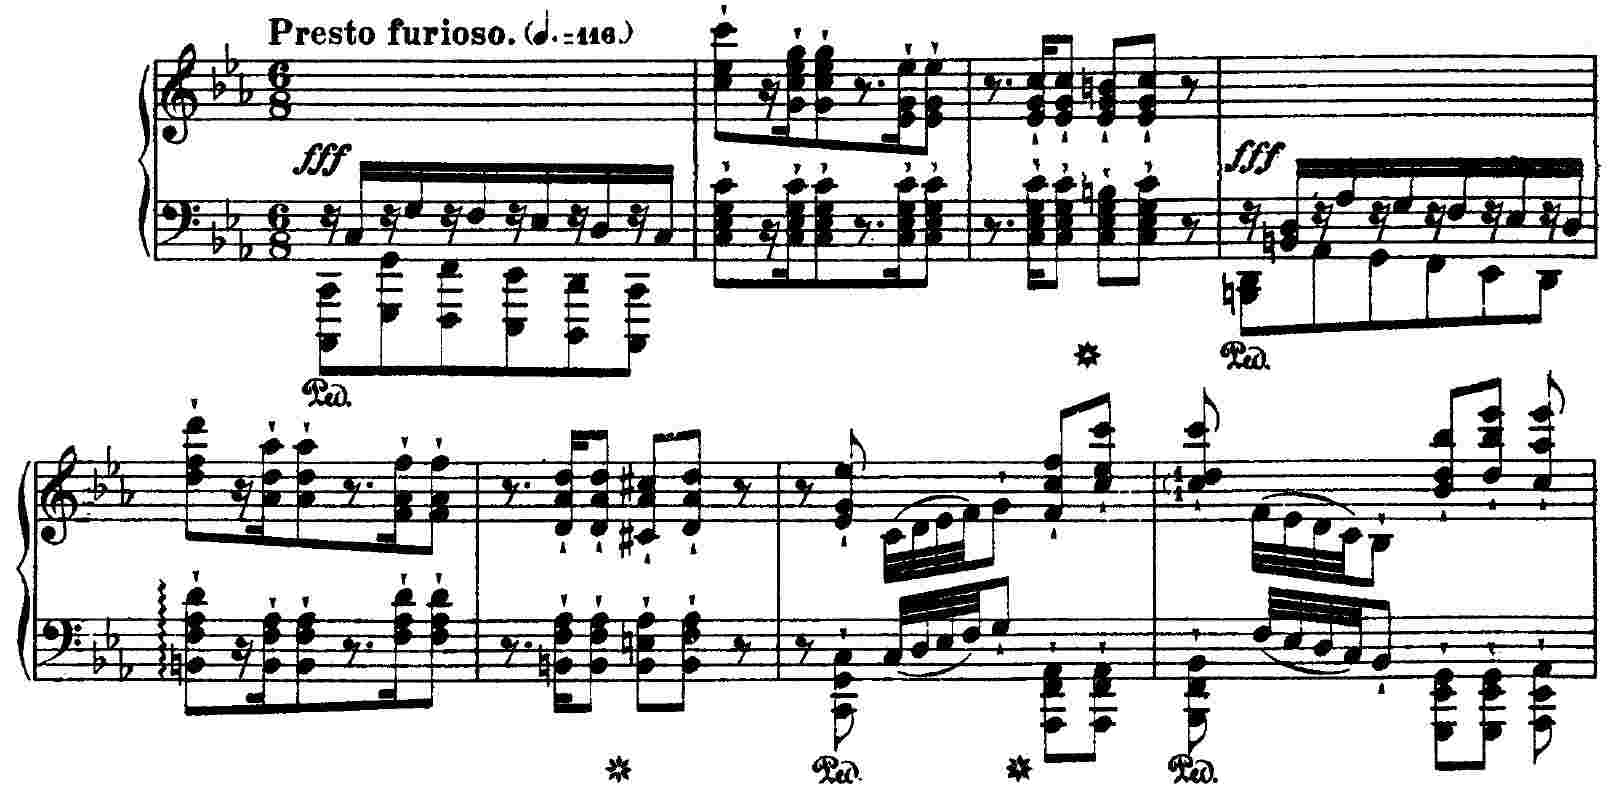 Liszt, Wilde Jagd, mm. 1 - 8